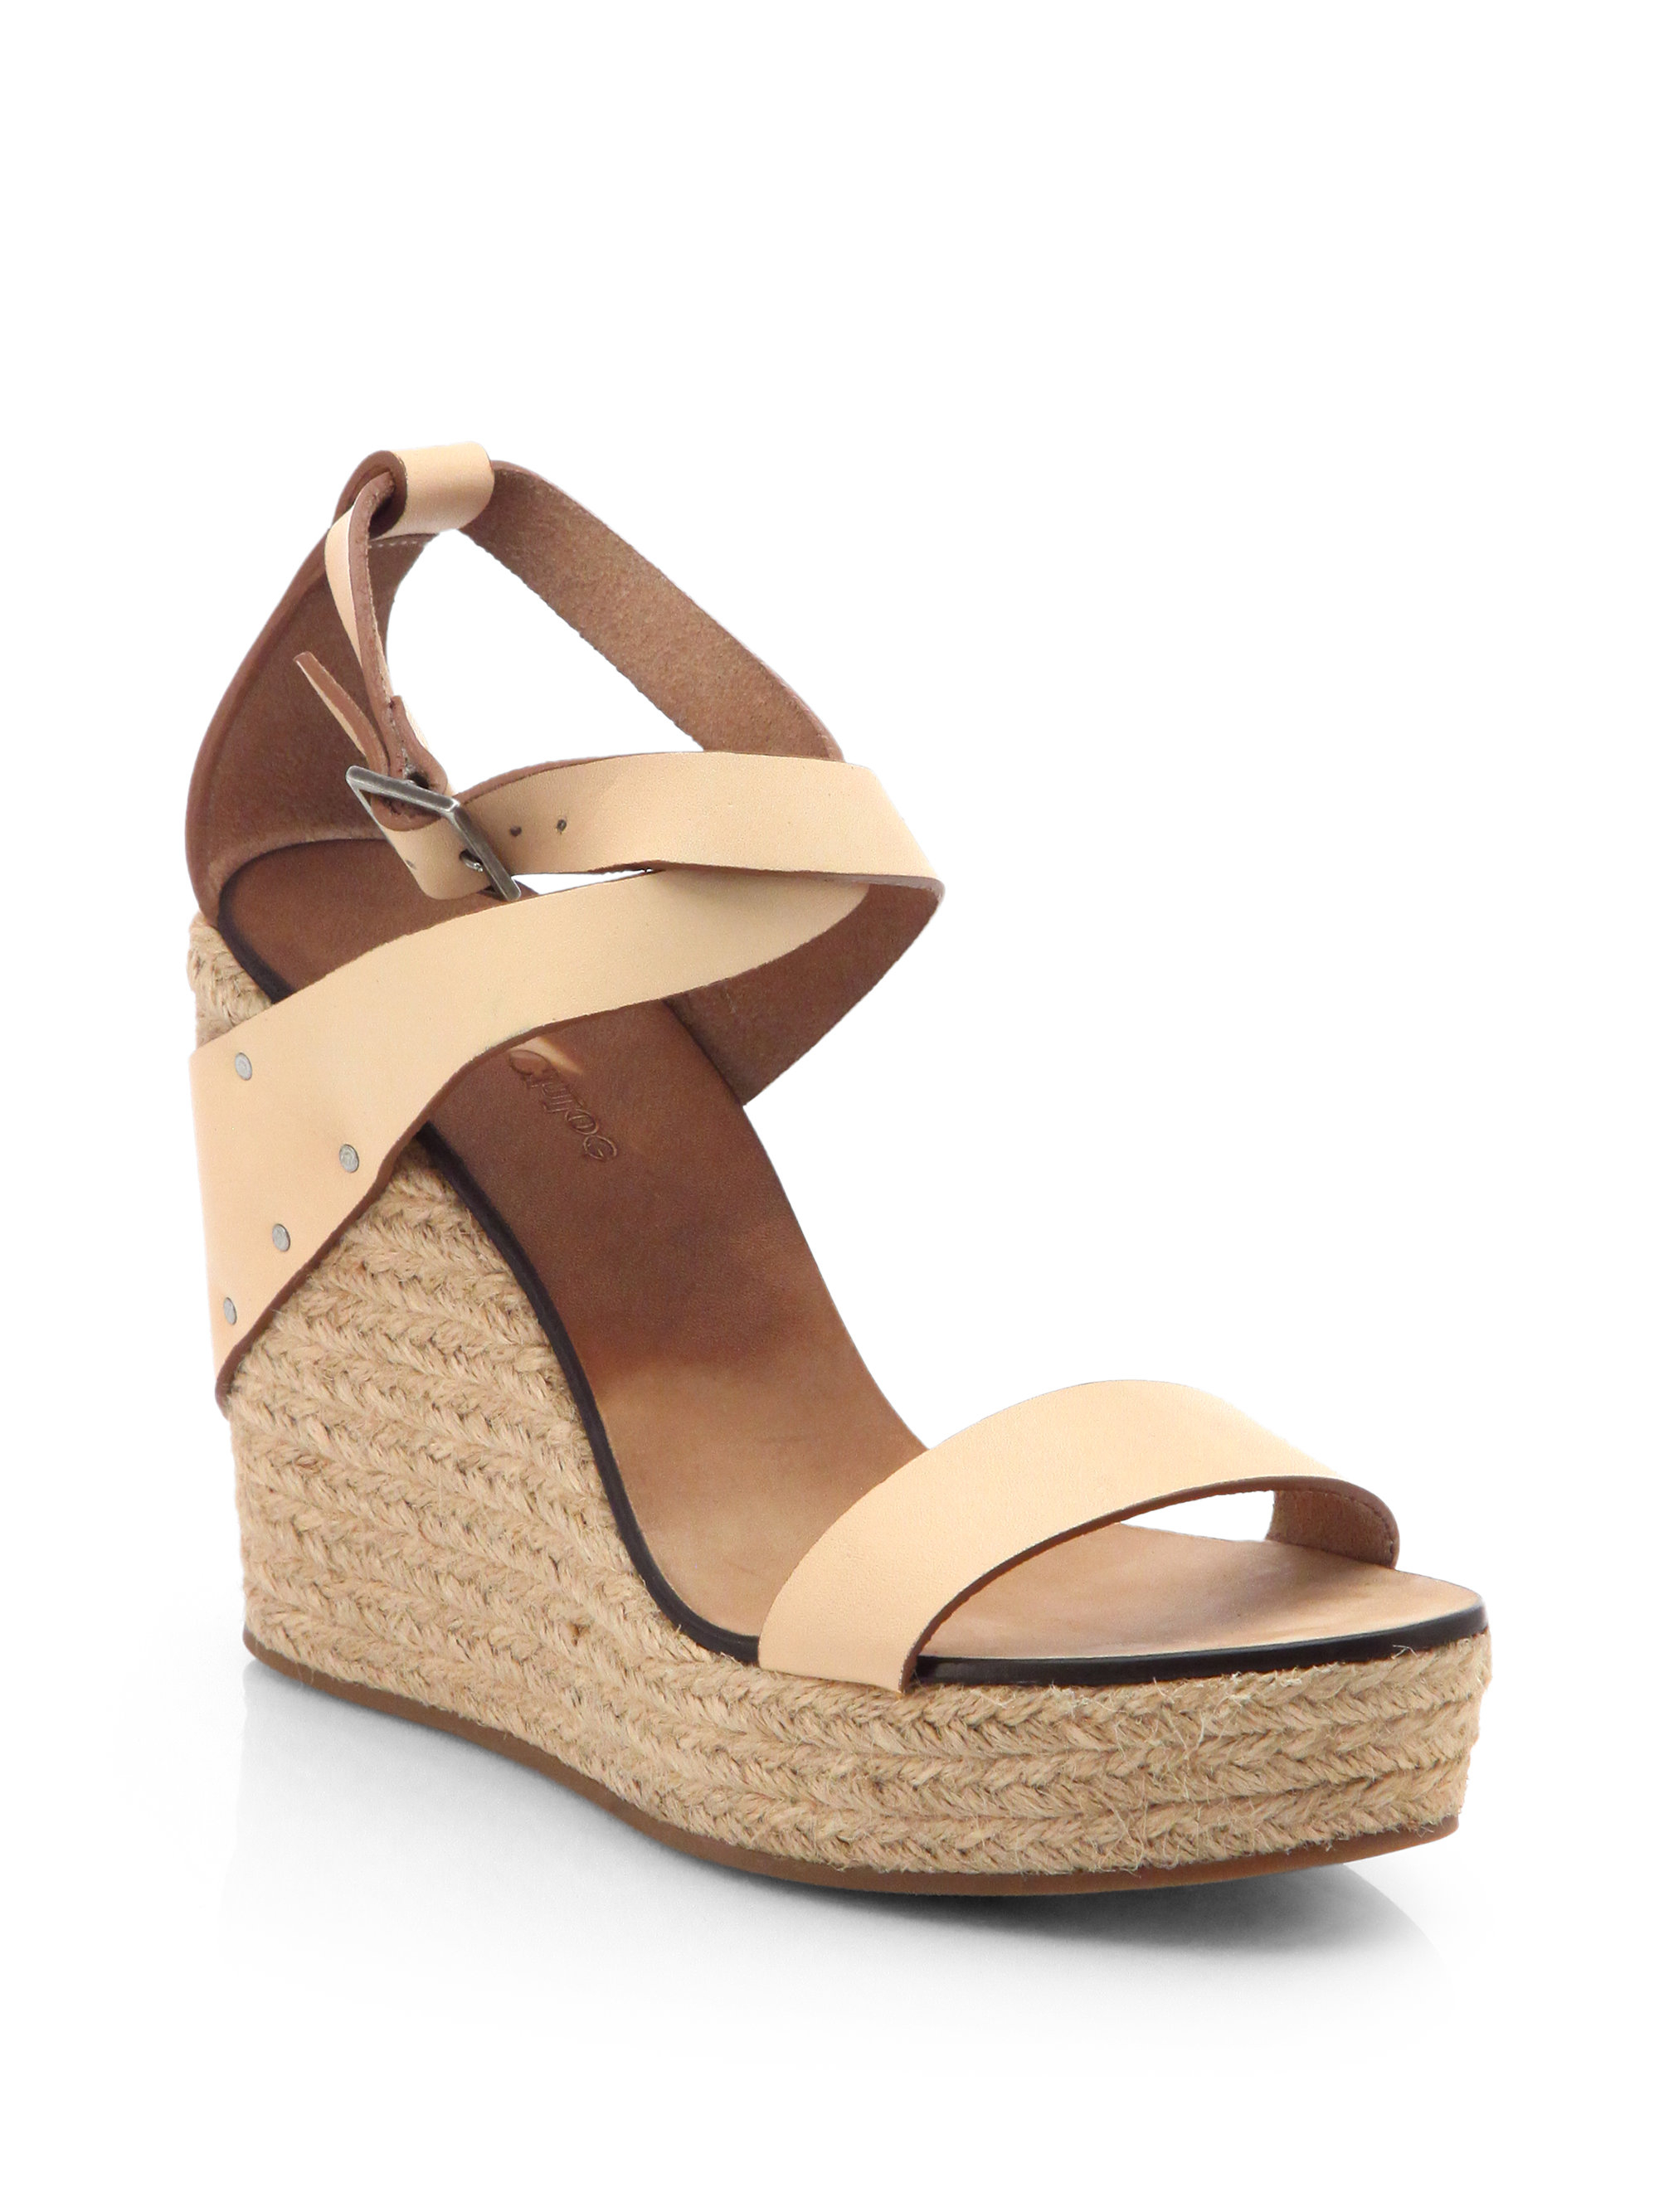 23295e772cfc1 Lyst - See By Chloé Leather Espadrille Wedge Sandals in Natural